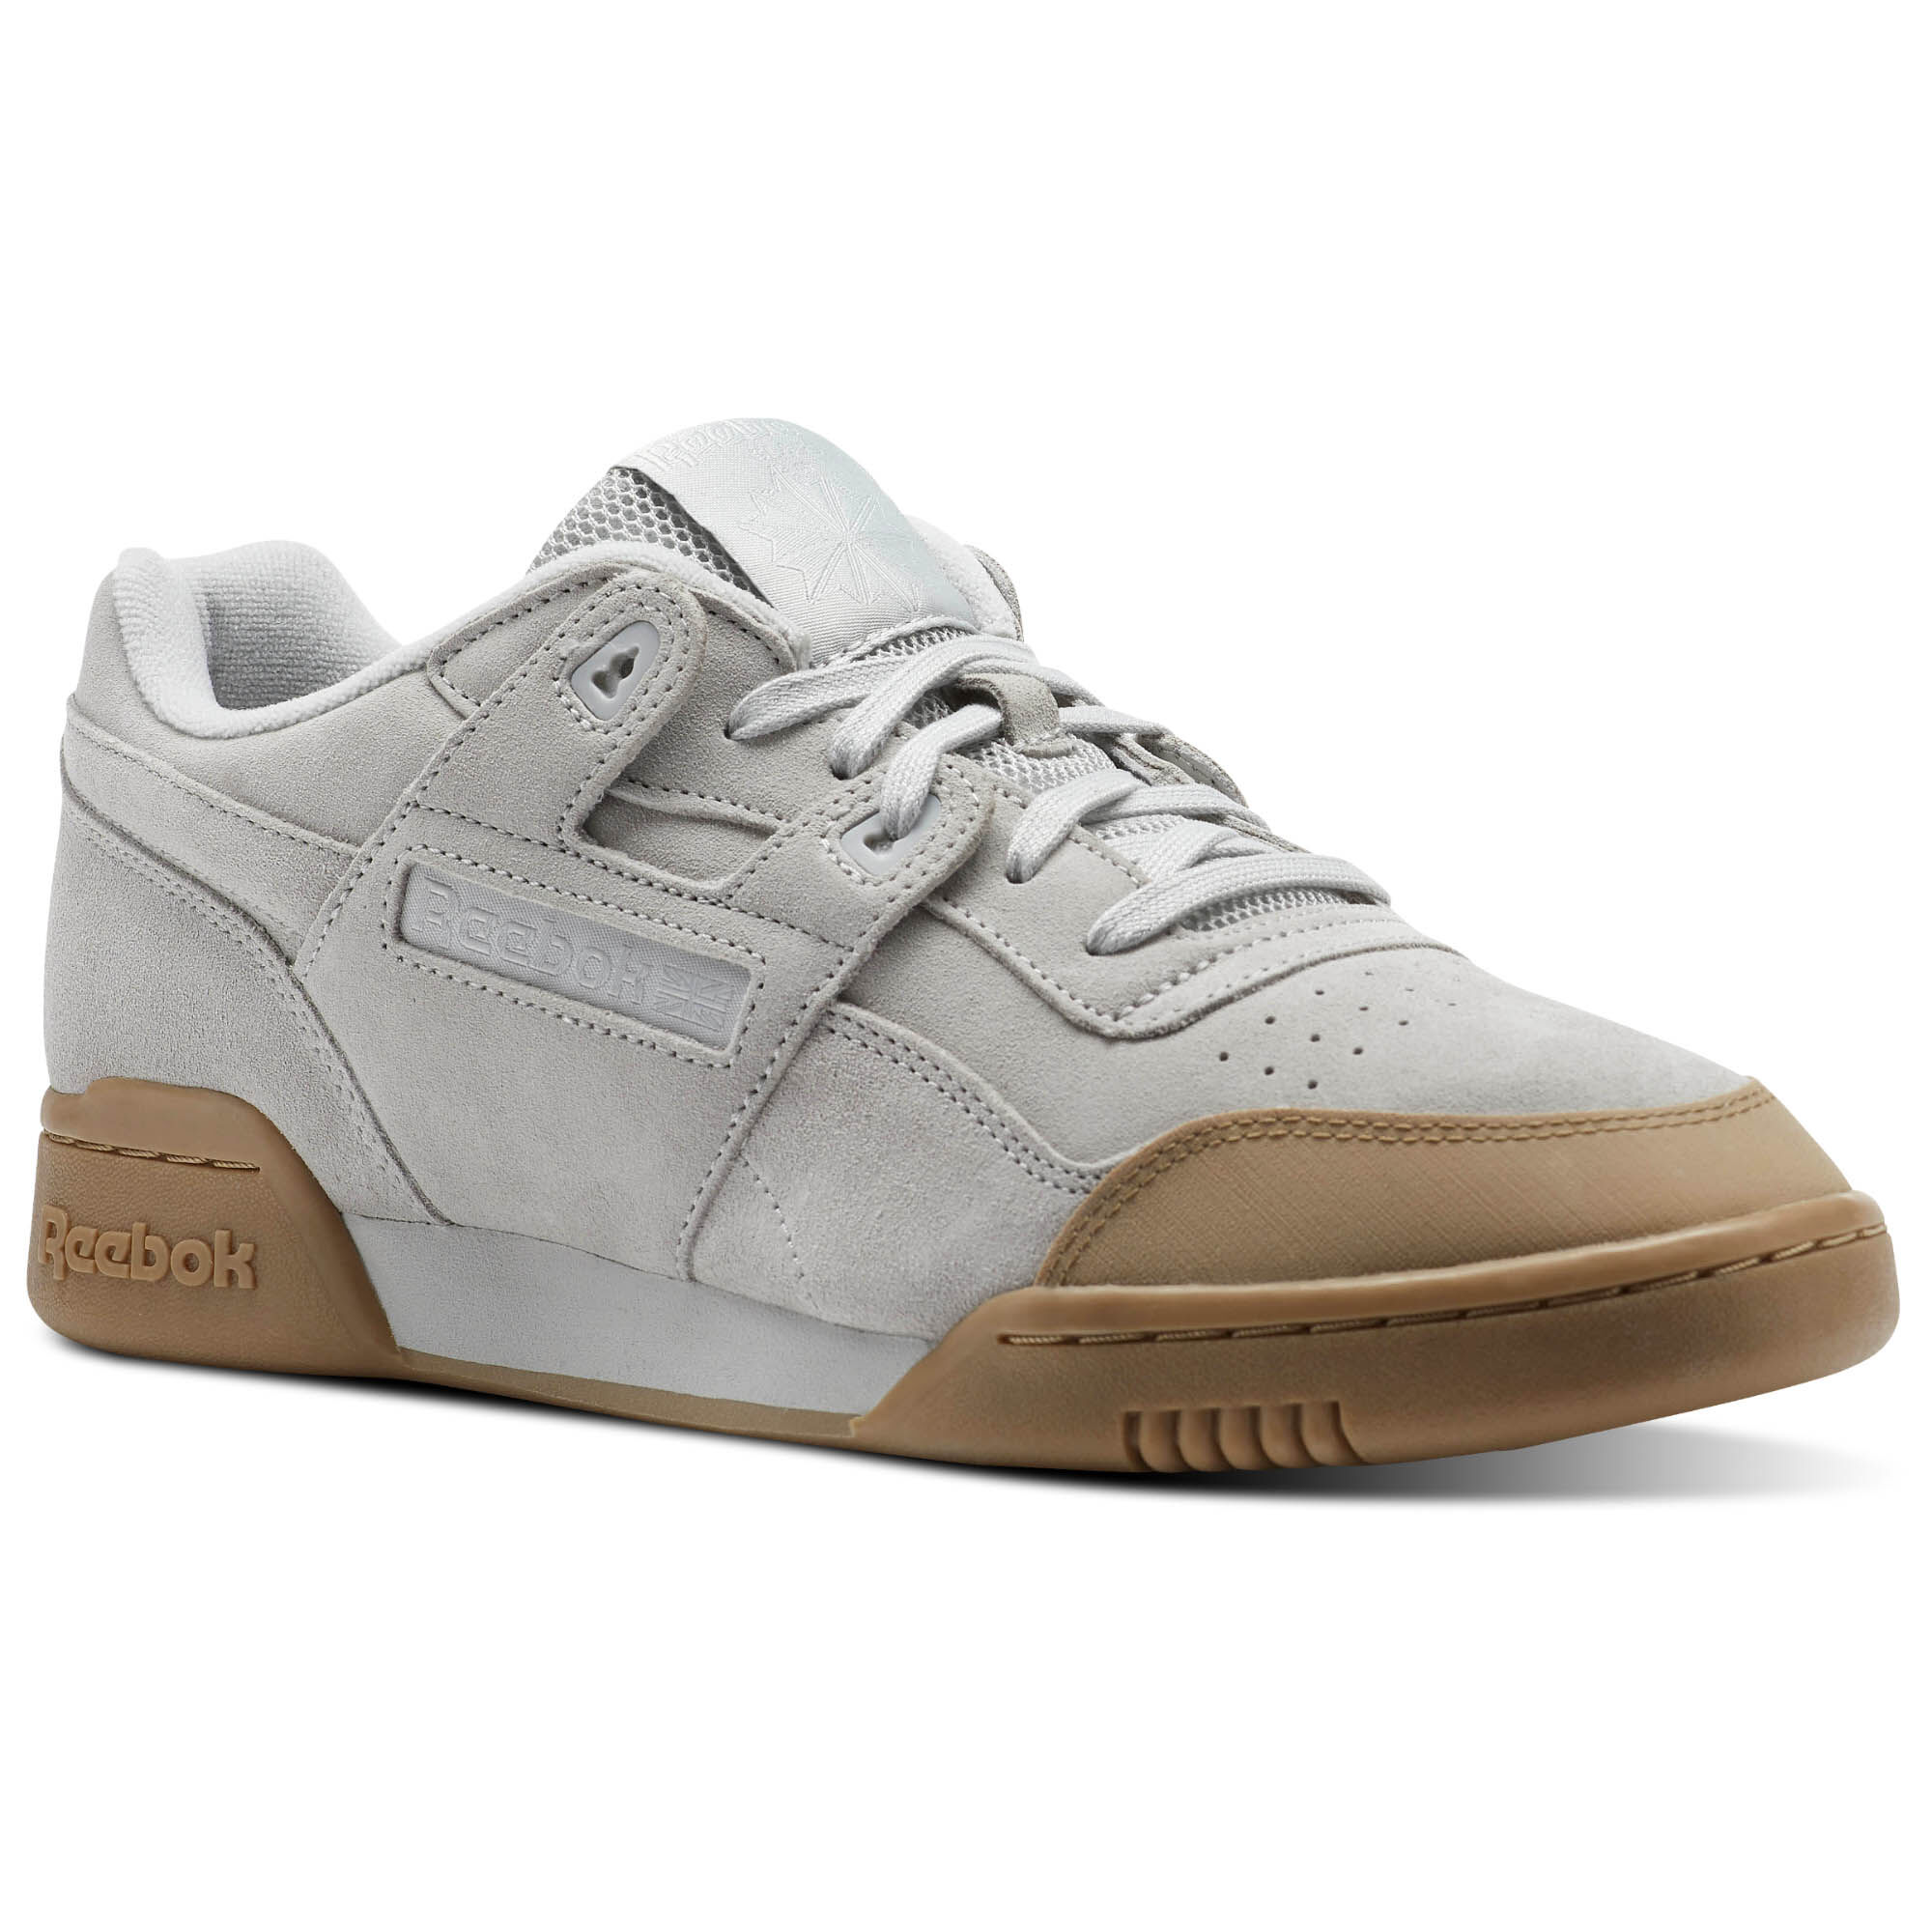 for sale under $60 free shipping marketable Reebok Workout Plus SKK Trainers In Grey CM9666 deals for sale clearance newest cheap sale tumblr twCzUA